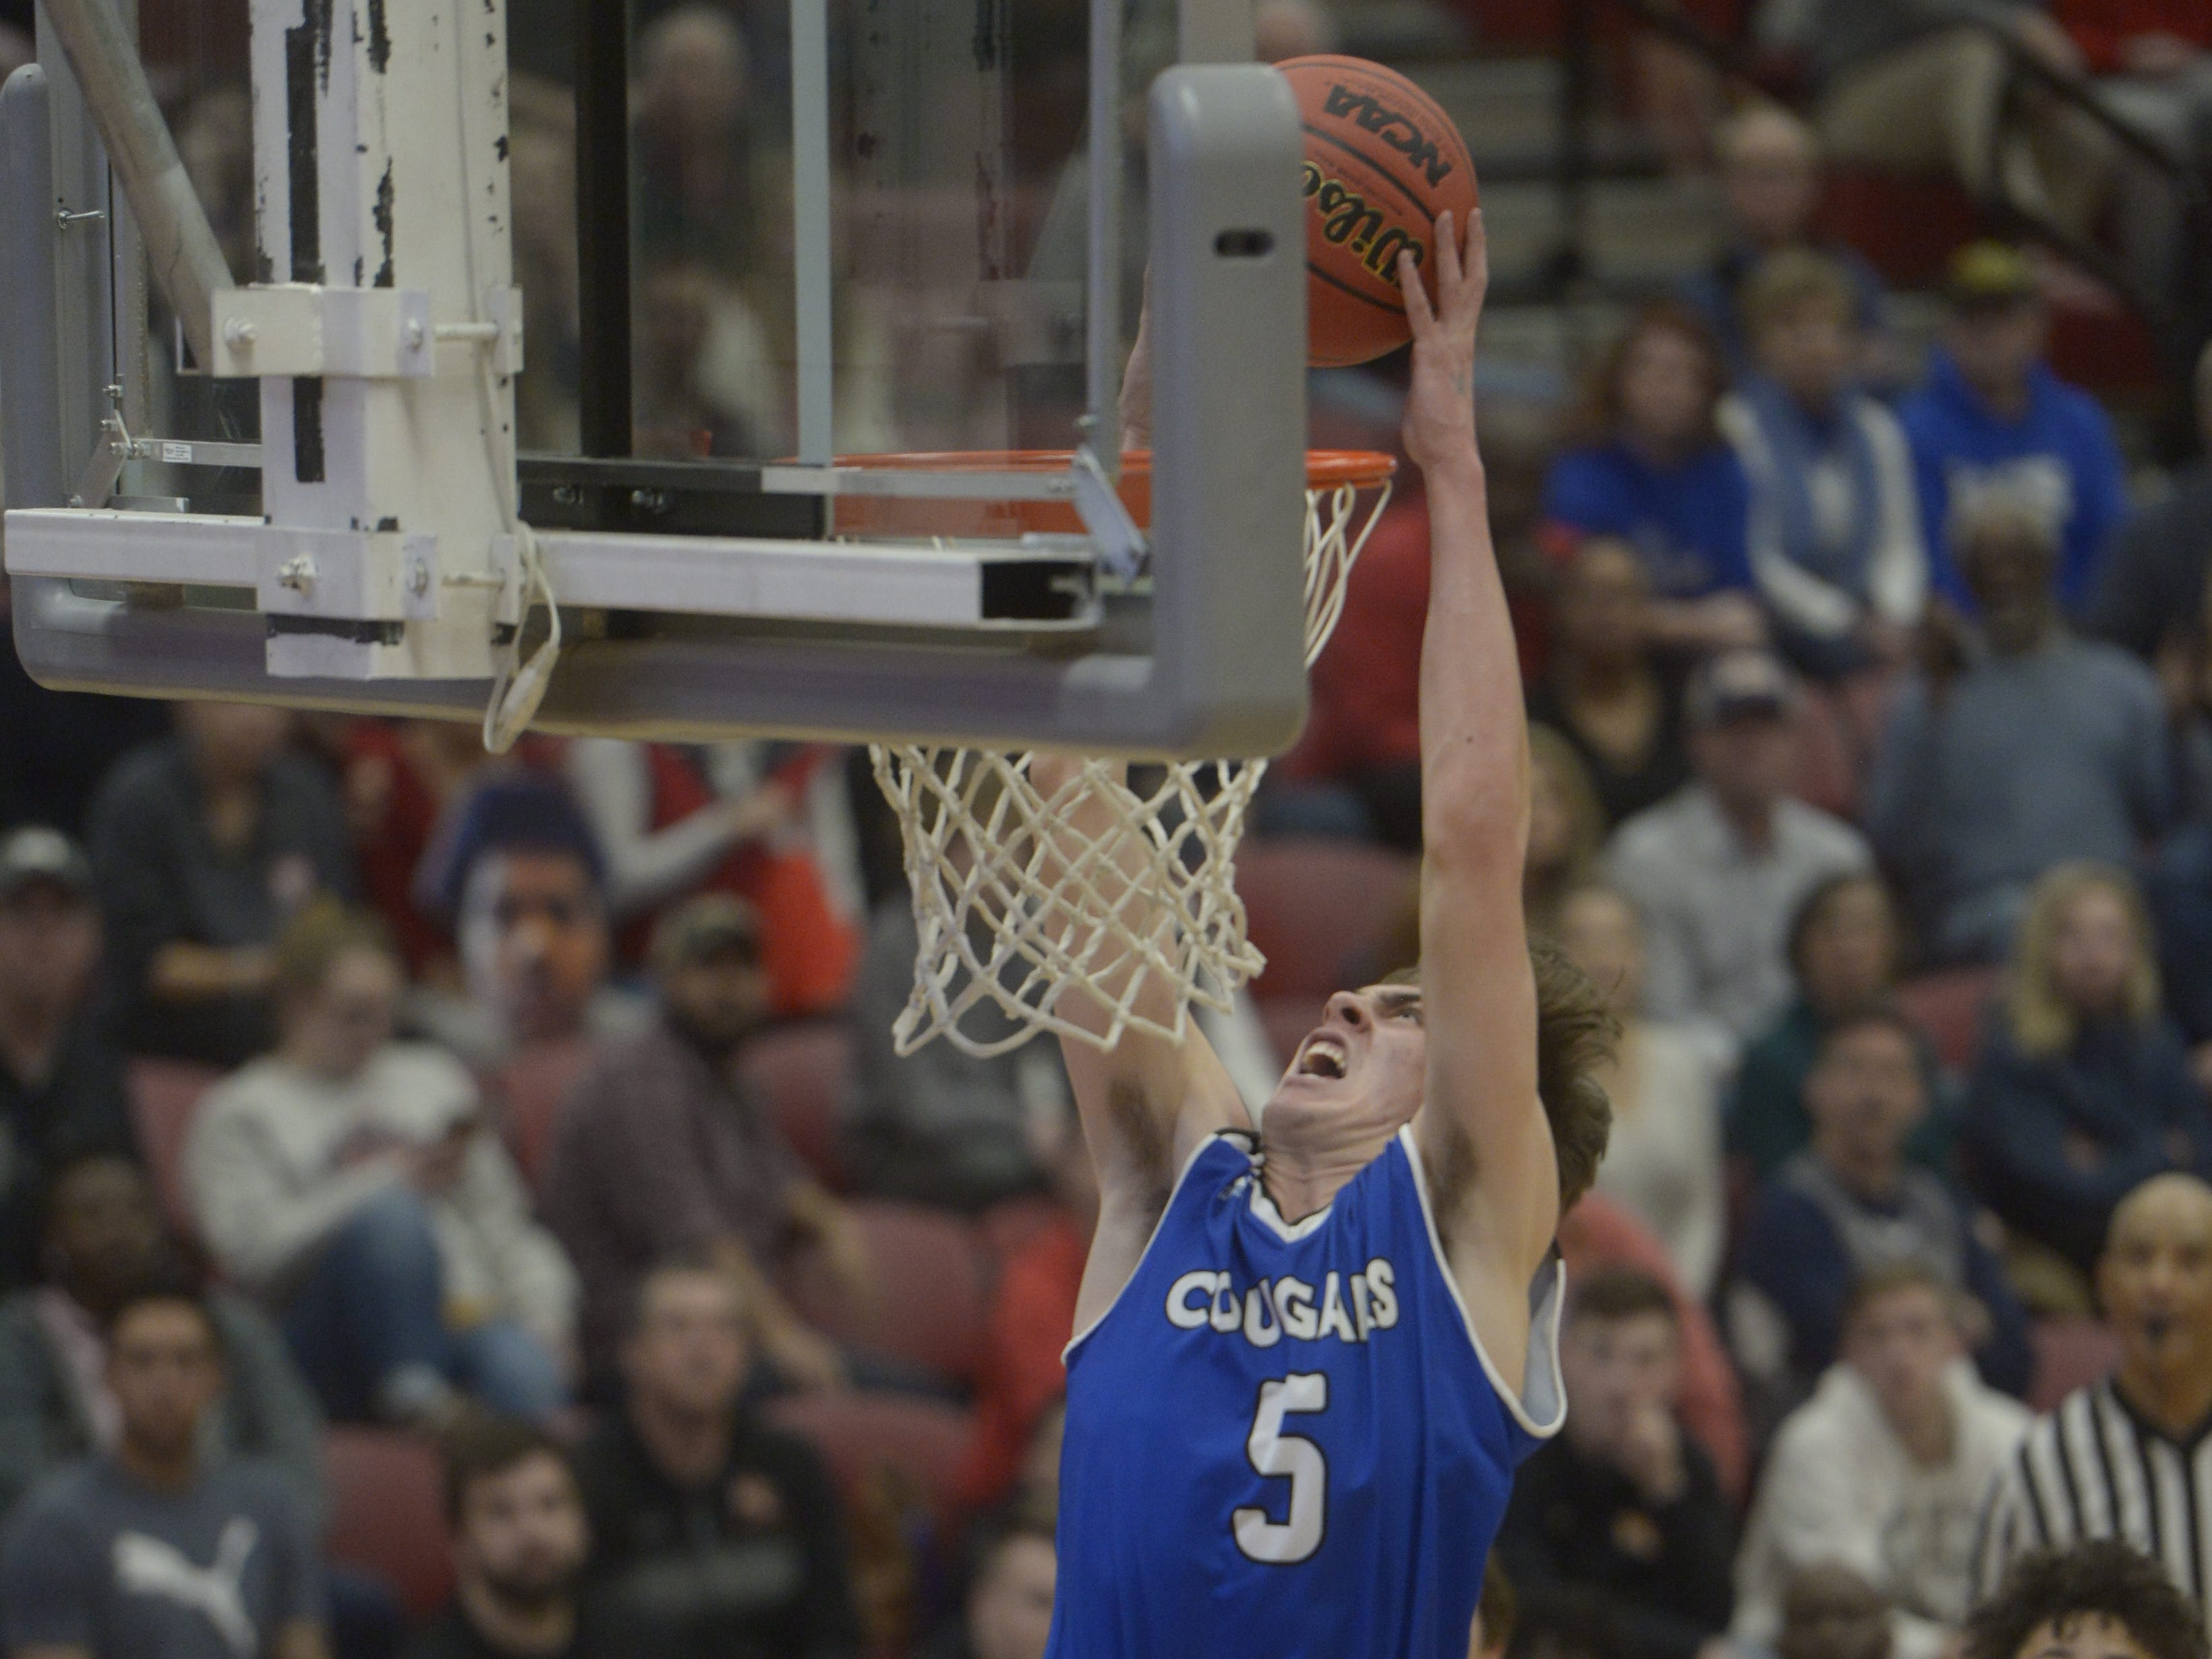 Resurrection Christian guard Reece Johnson attempts a dunk during a Class 3A quarterfinals game against Manual at the University of Denver on Thursday, March 7, 2019.